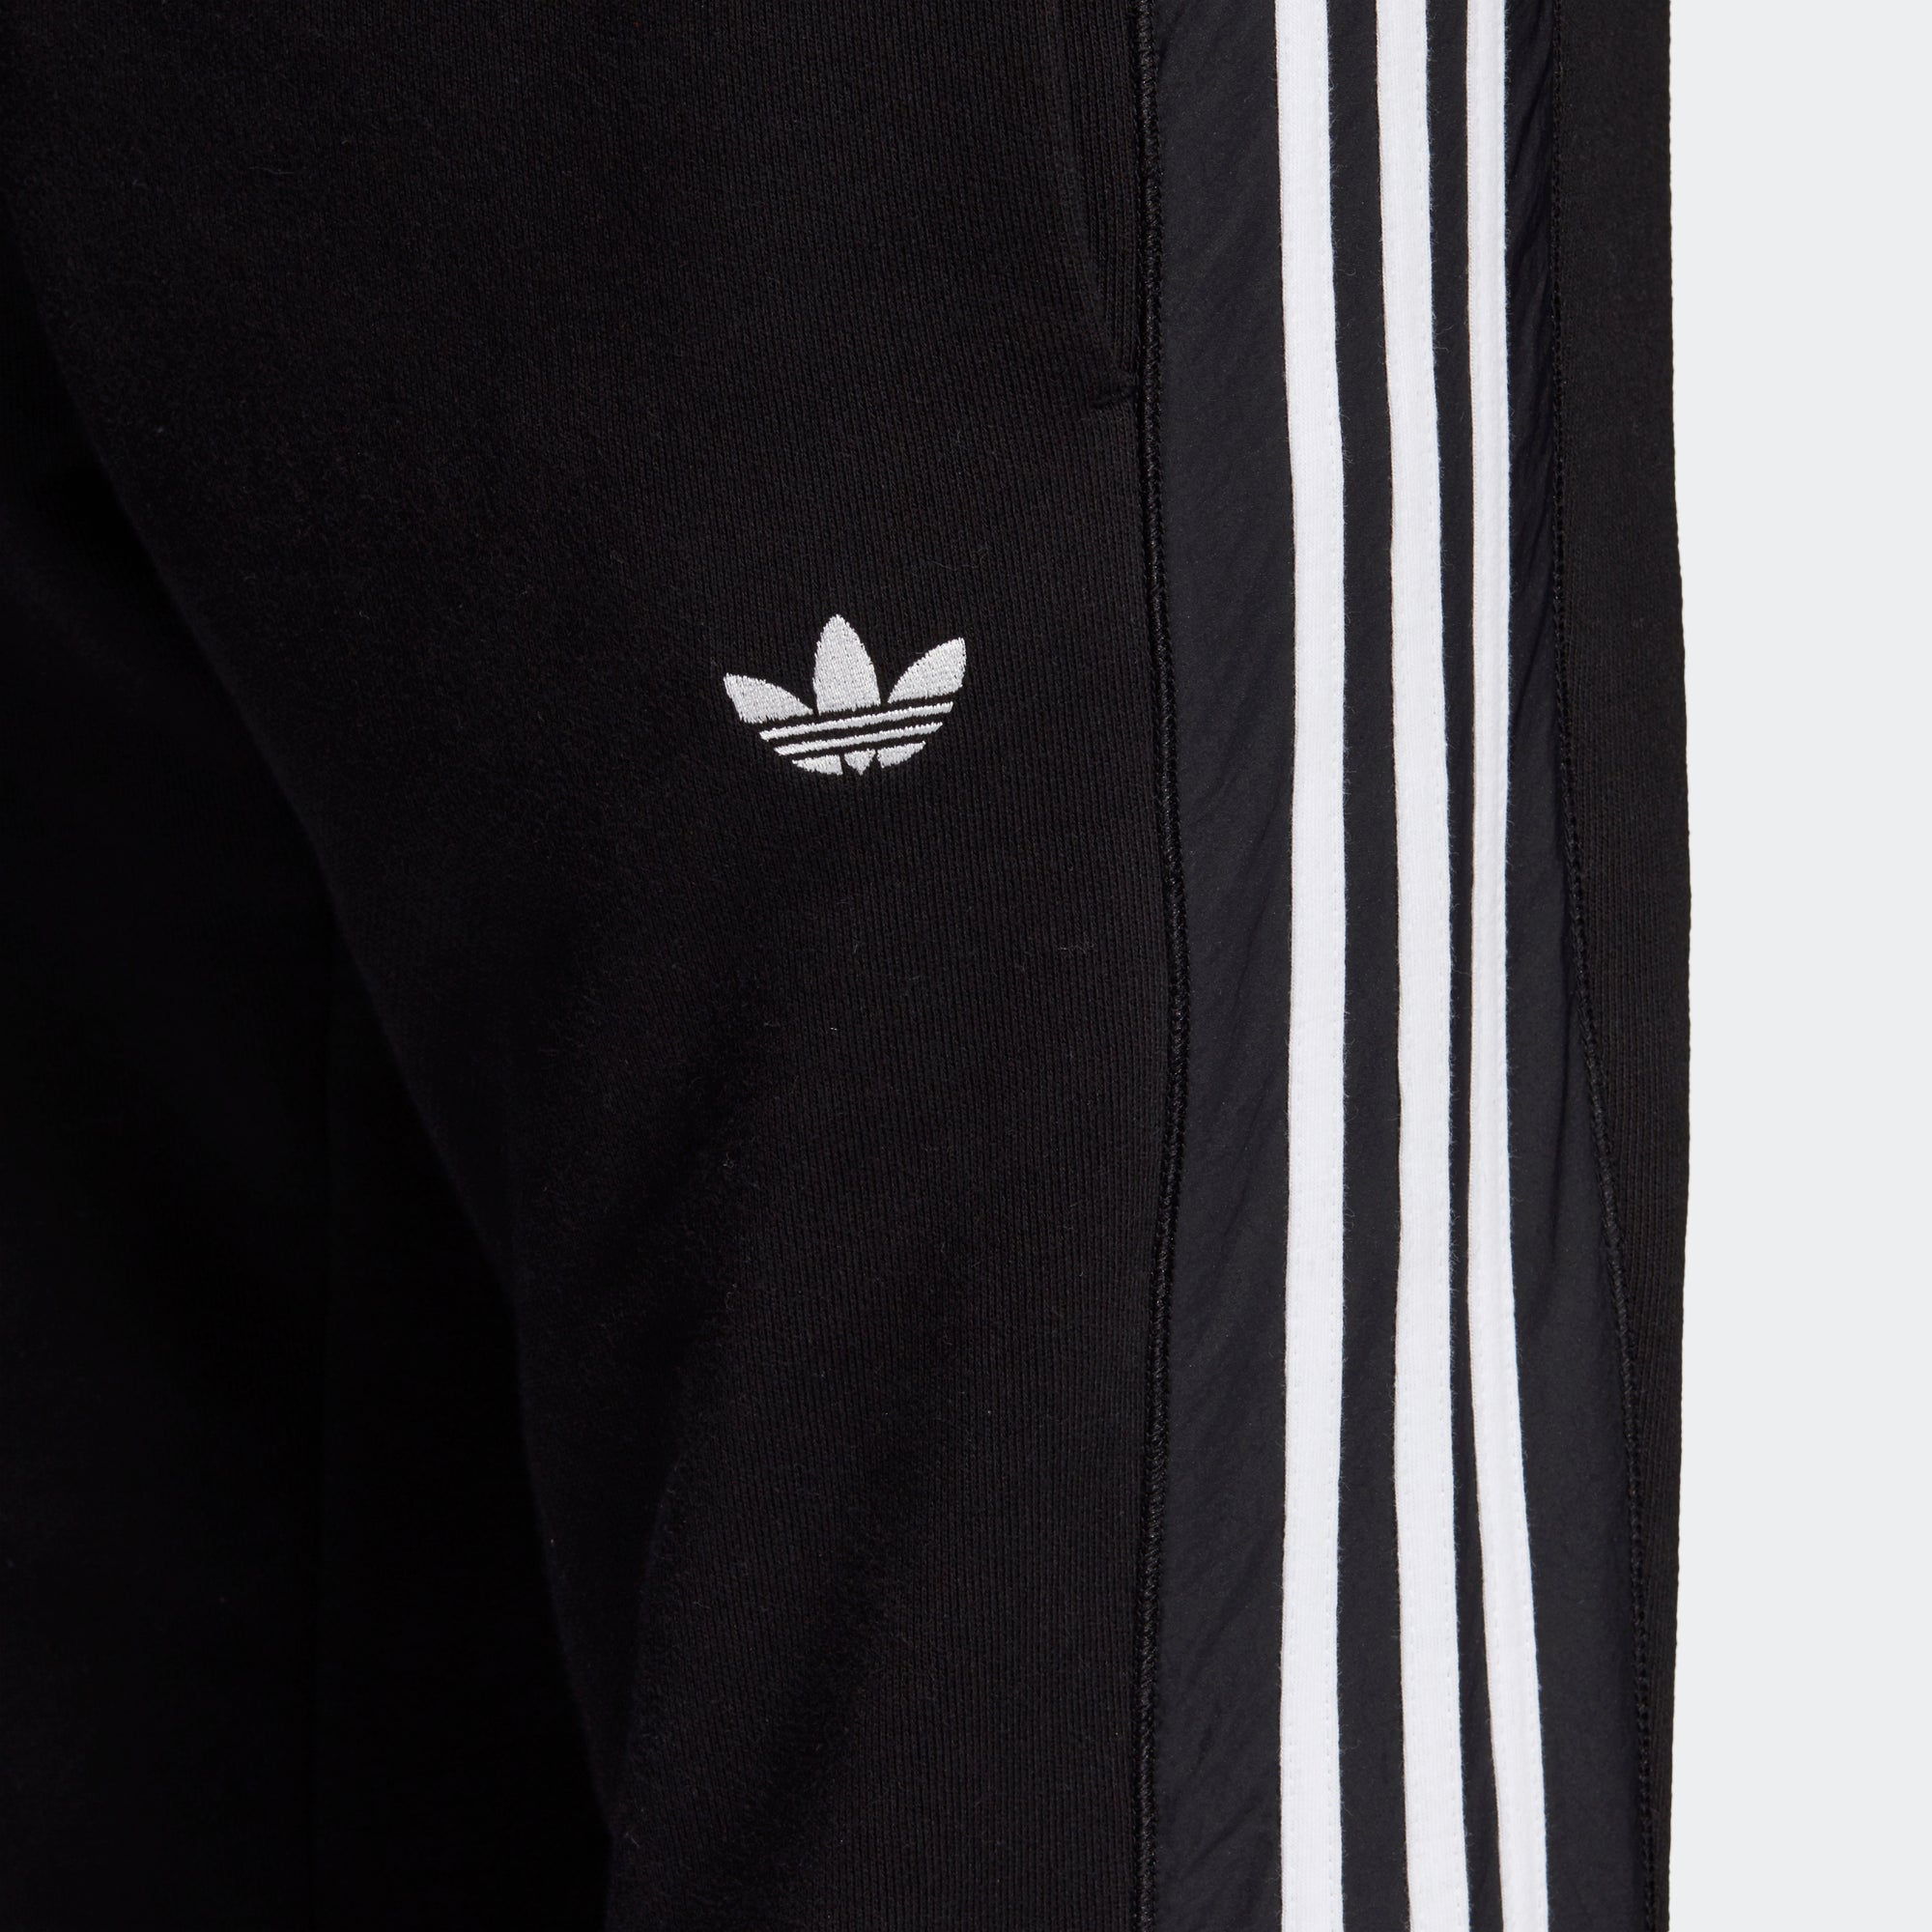 buscar casado vertical  adidas Radkin Sweatpants Black DU8137 | Chicago City Sports